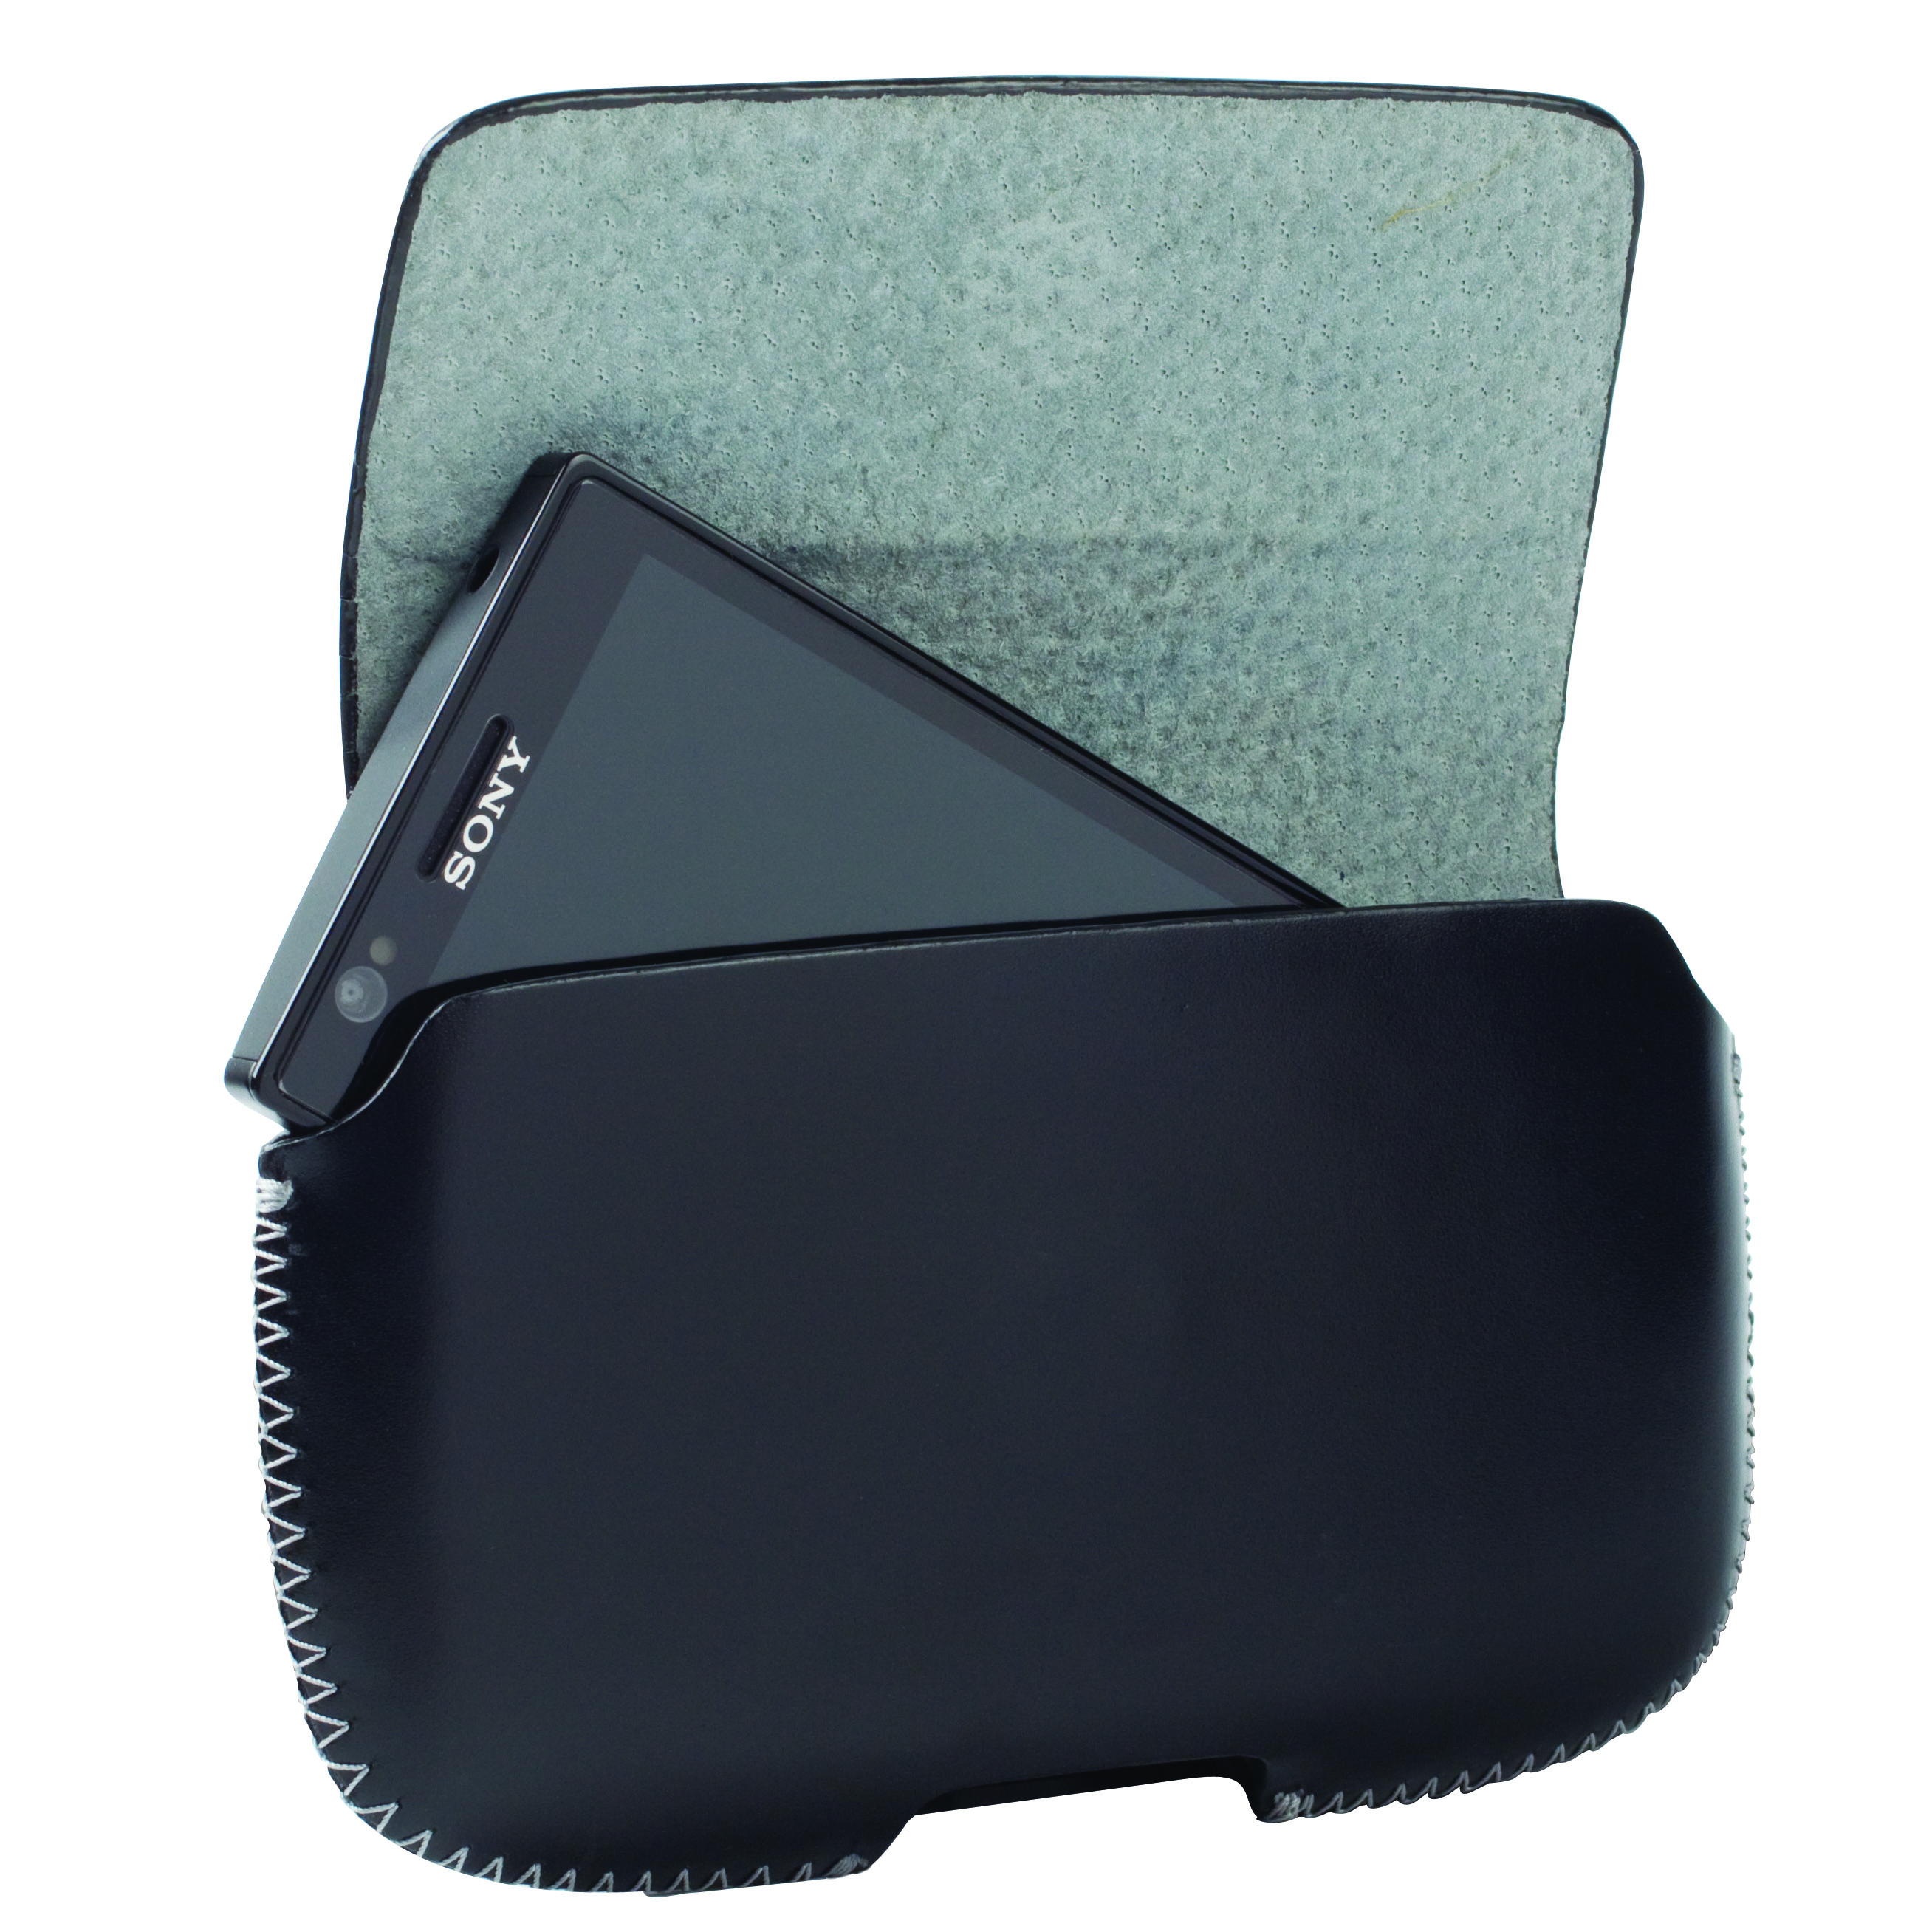 Krusell Hector Mobile Case Extra Large Black